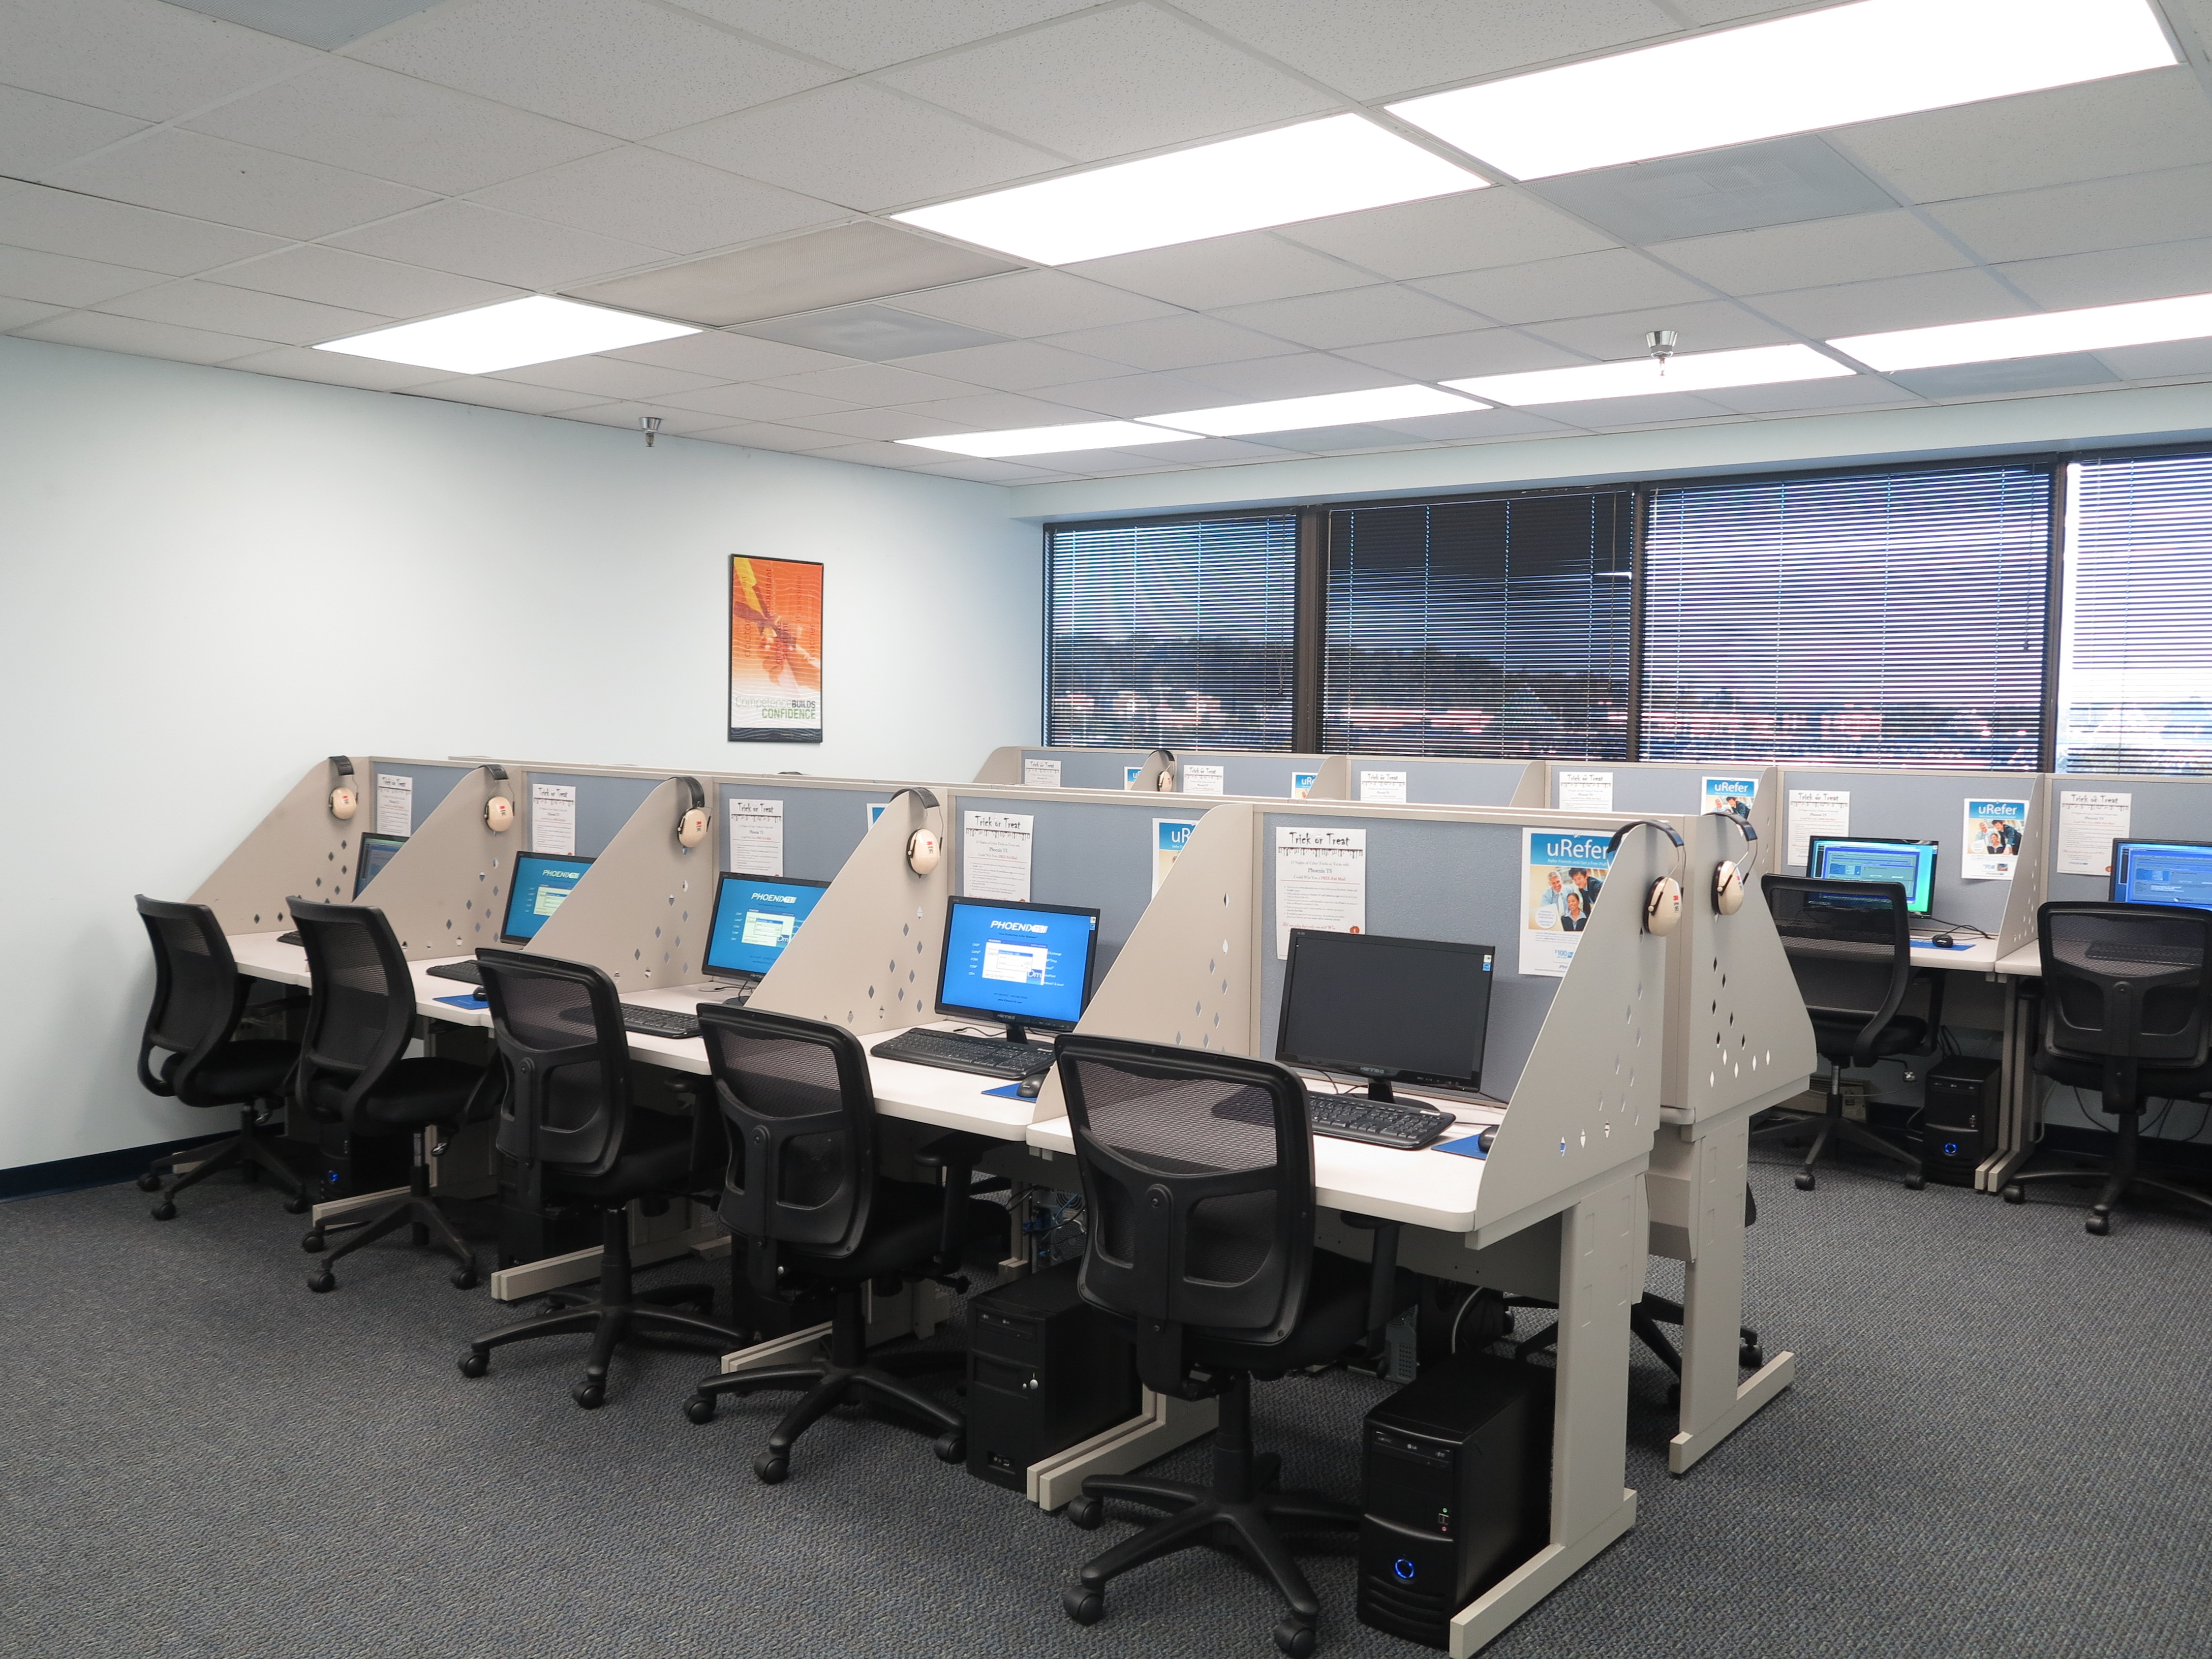 It certification testing center in columbia md phoenix ts phoenix ts testing room xflitez Image collections